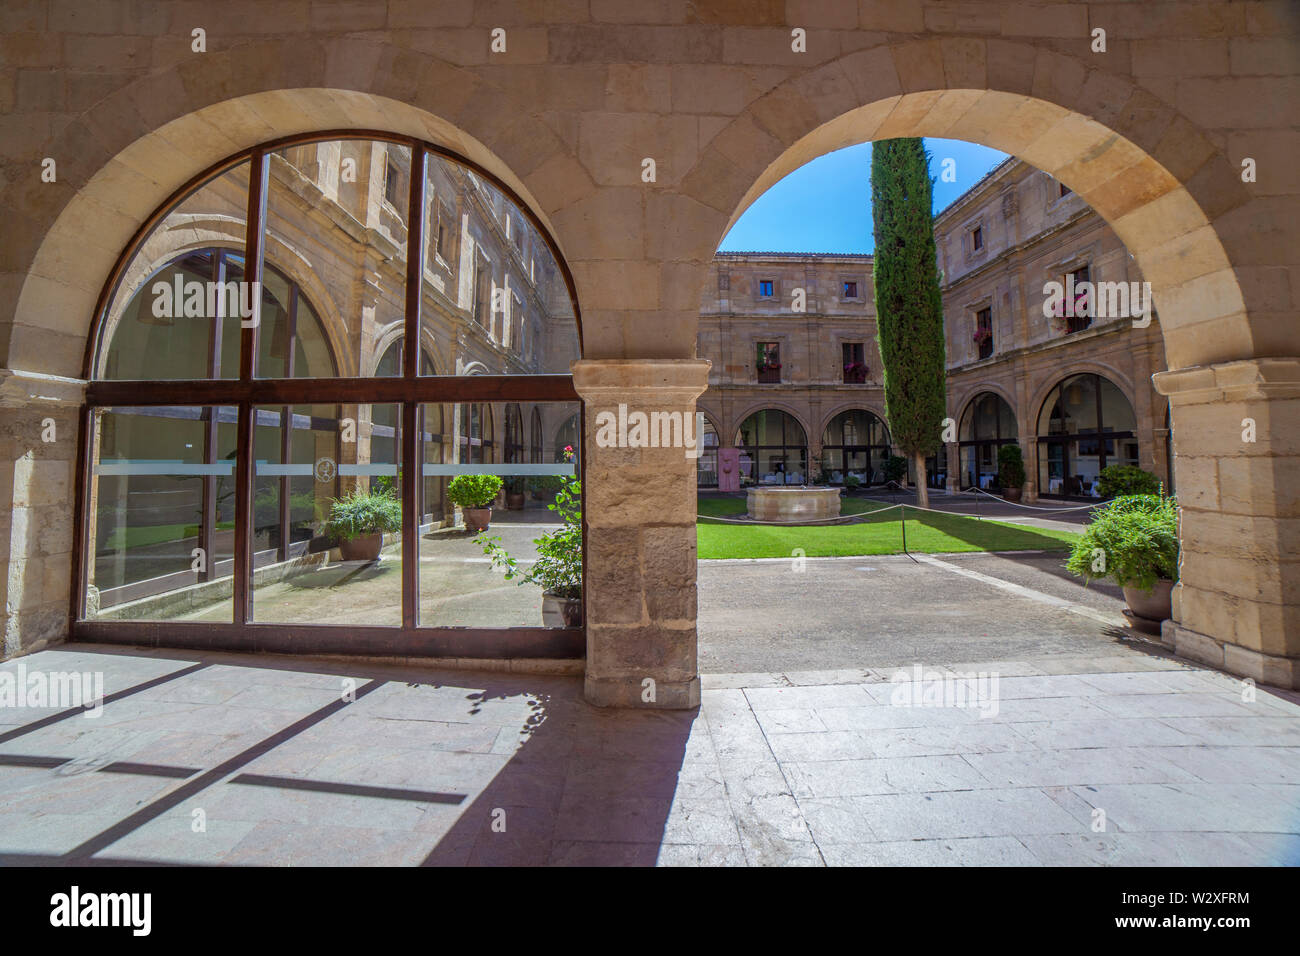 Leon, Spain - June 25th, 2019:  Collegiate of San Isidoro, Leon, Spain. Entrance cloister - Stock Image